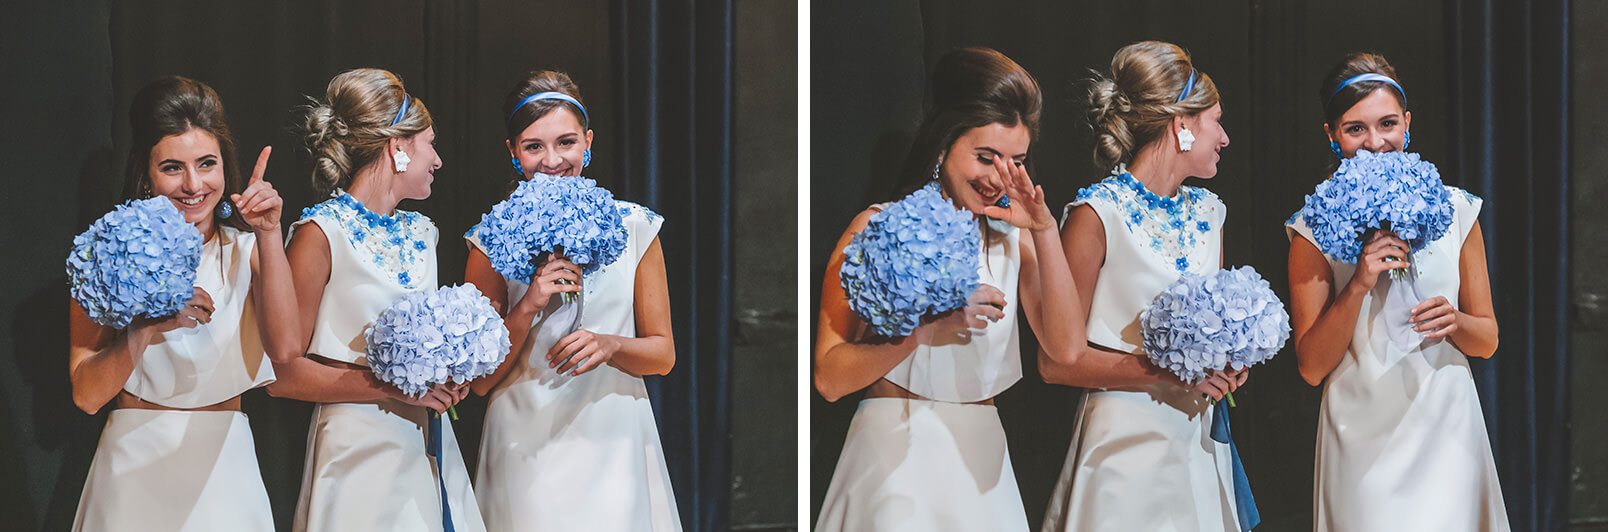 1960s mood Wedding ceremony. Bridesmaids laughing just after the first kiss.